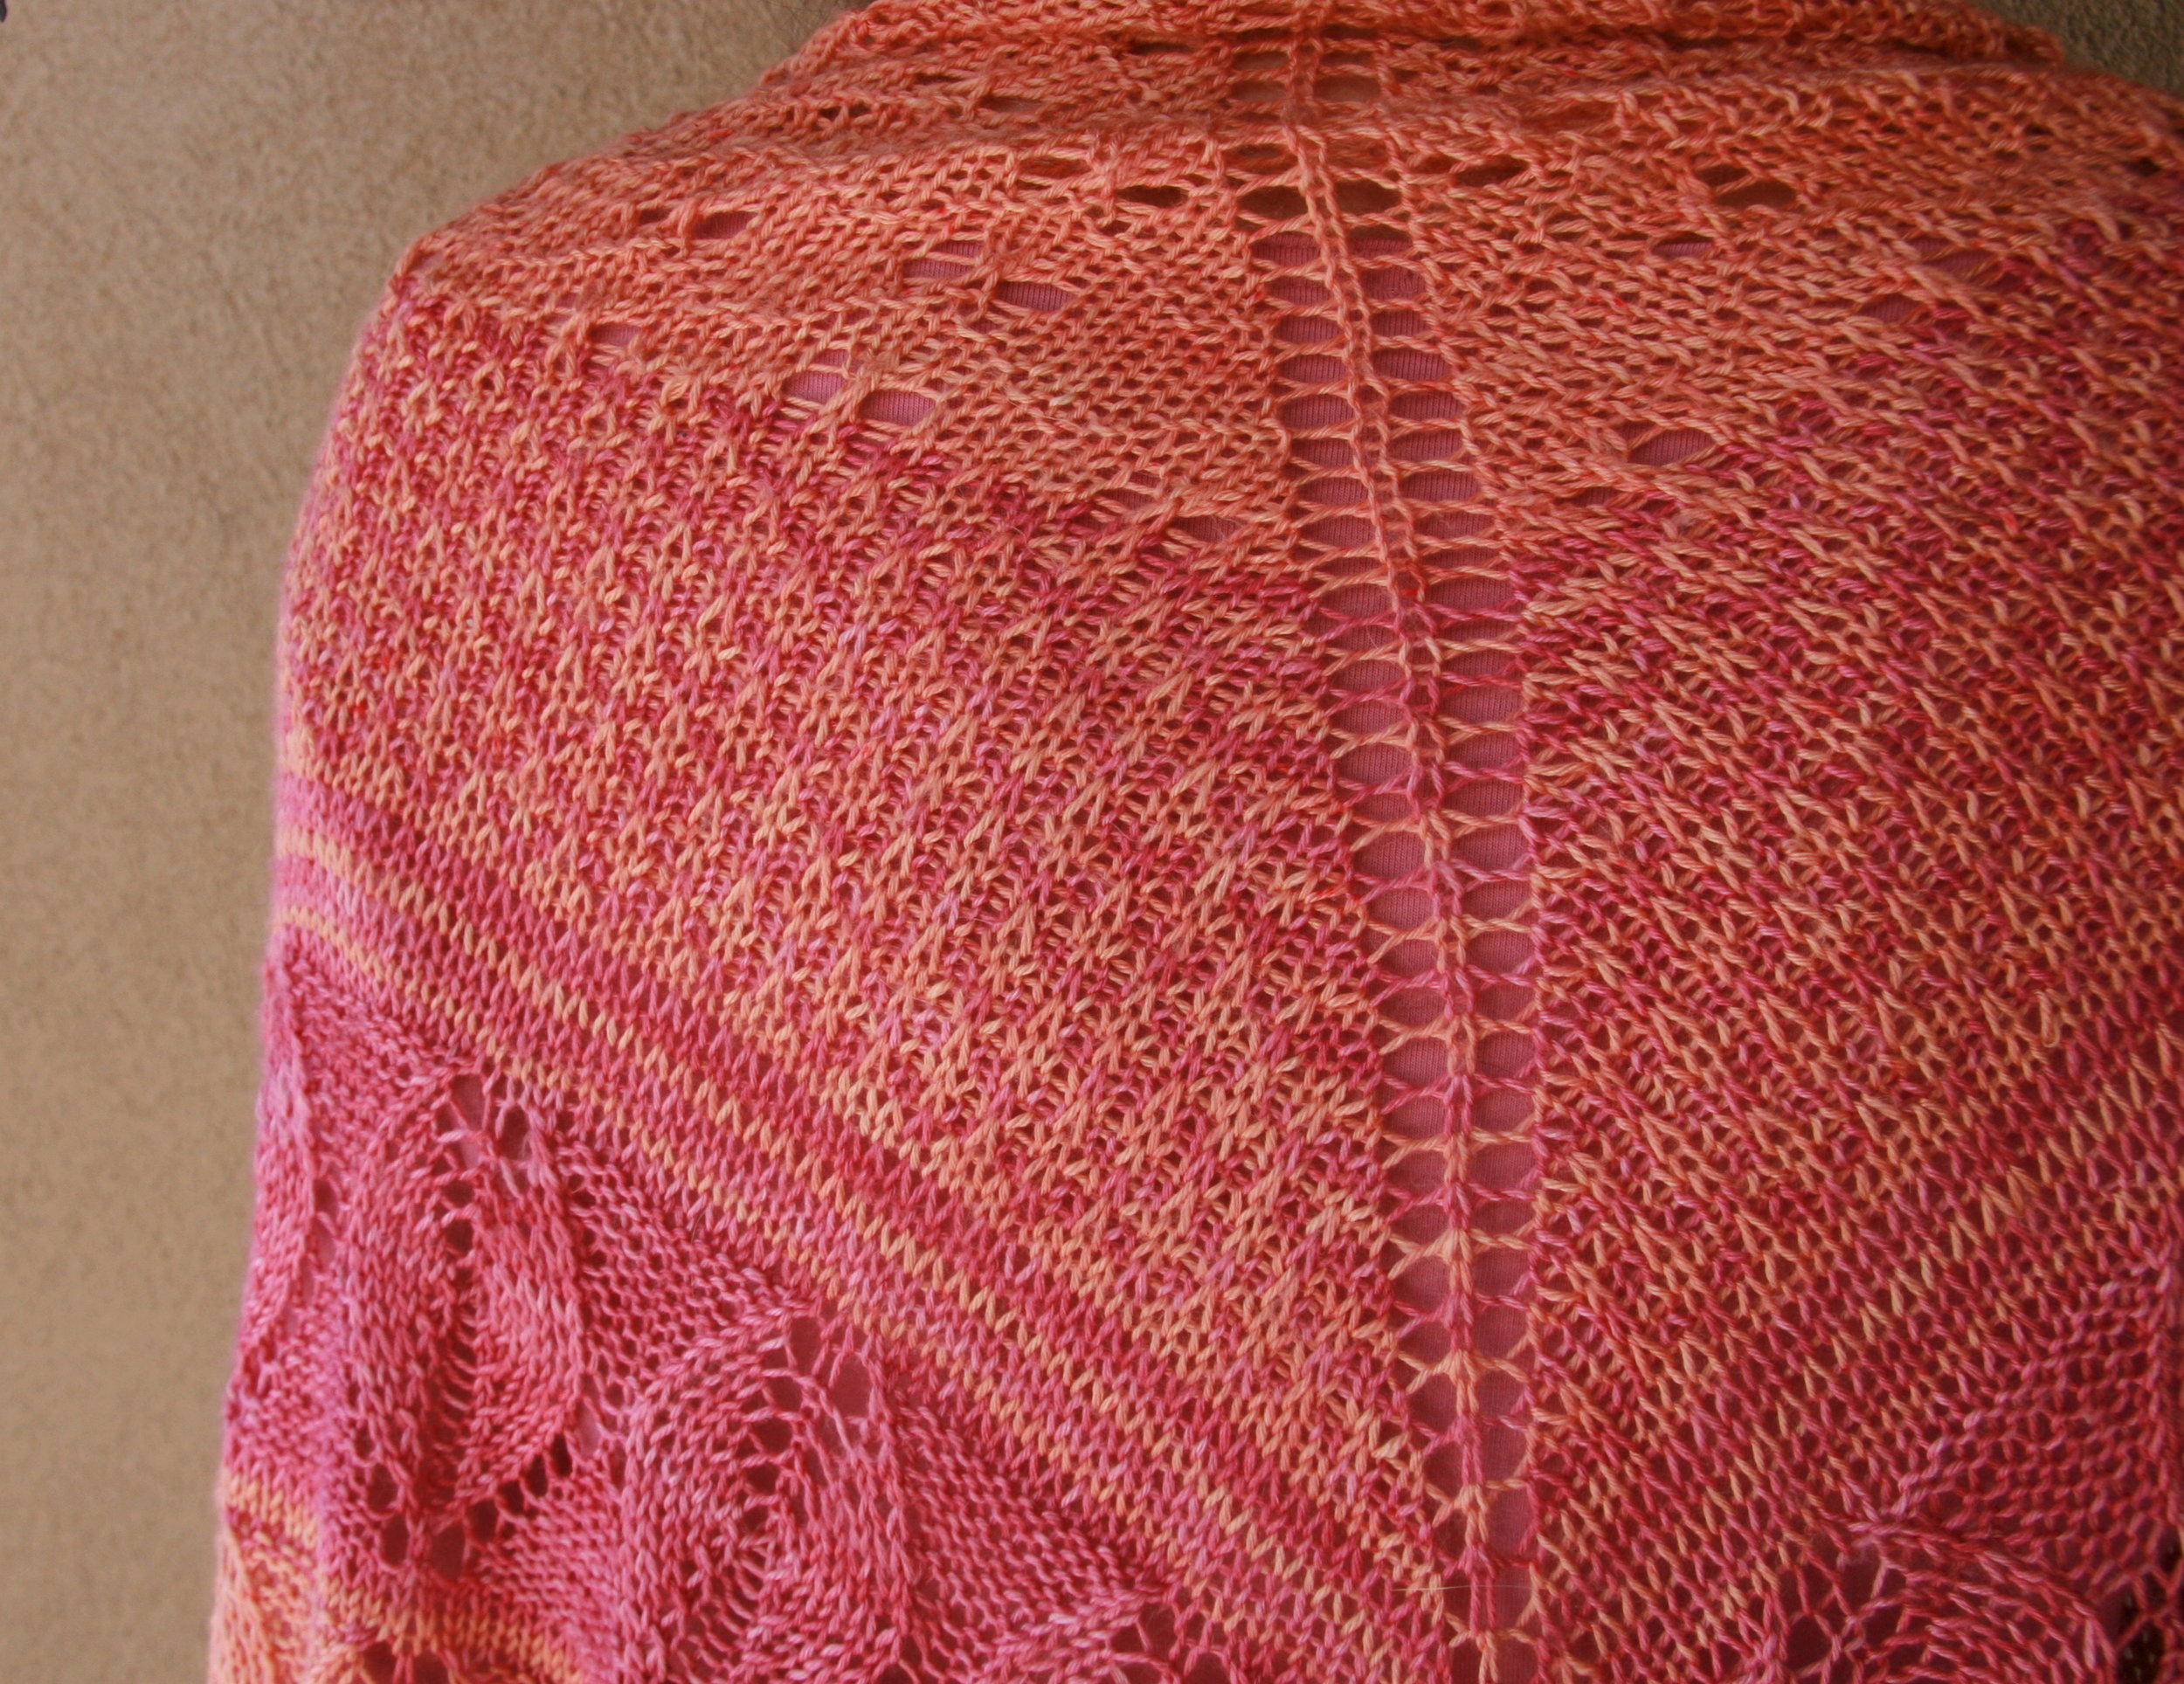 Spindle Shawl 3.jpg